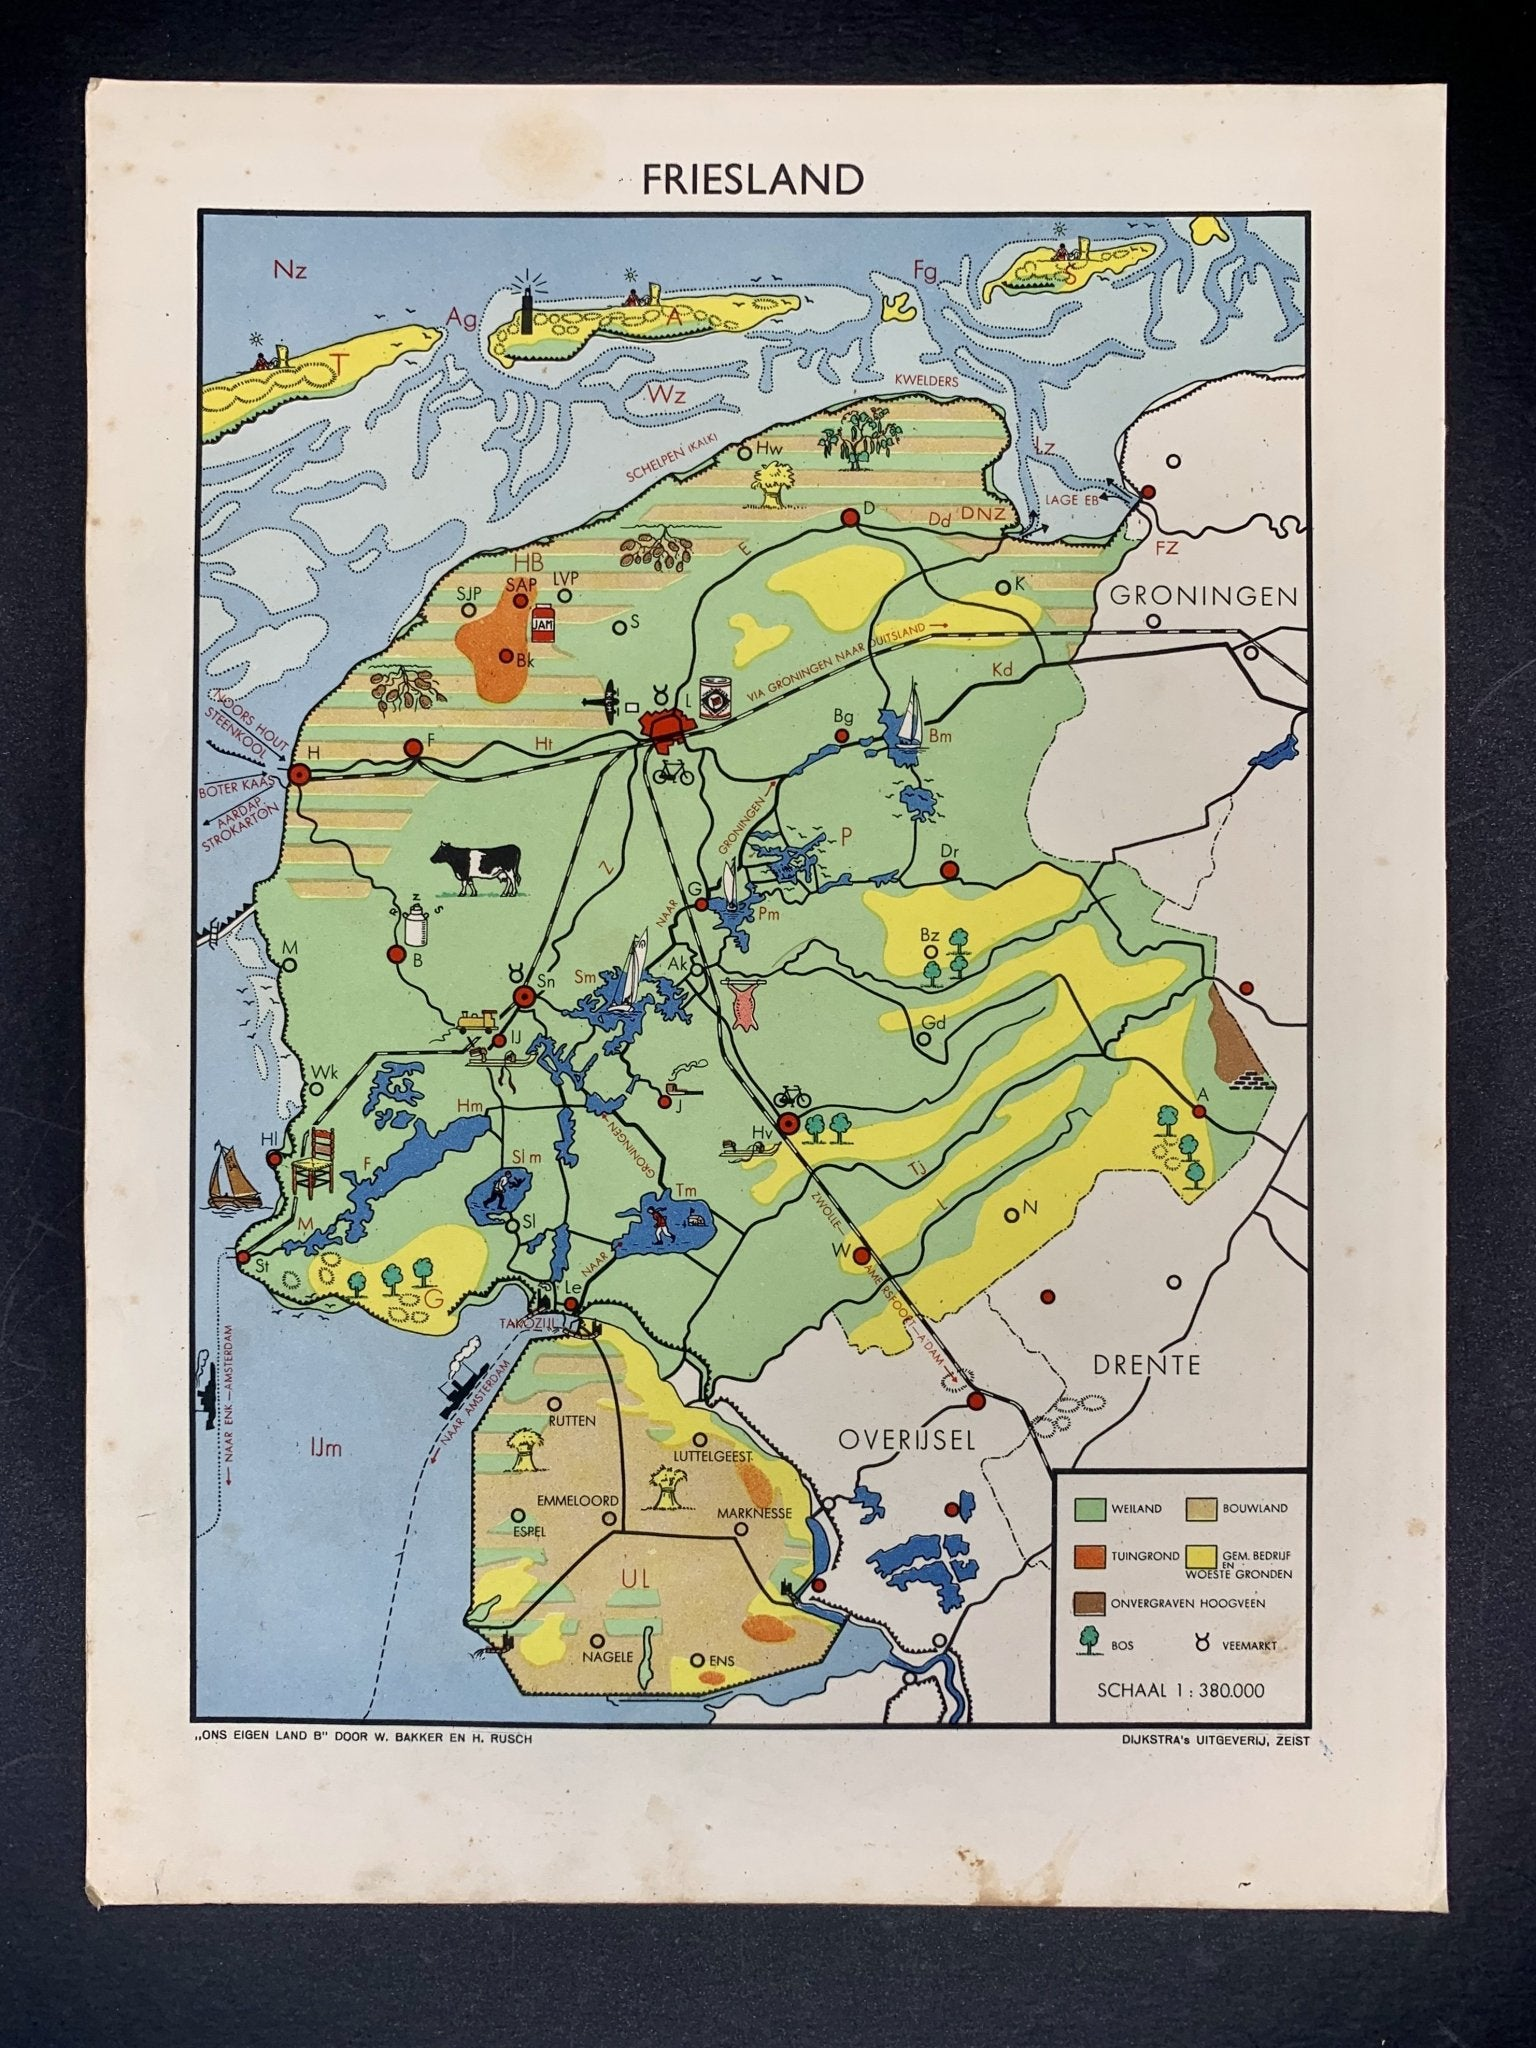 Friesland - 1948 - World of Maps & Travel